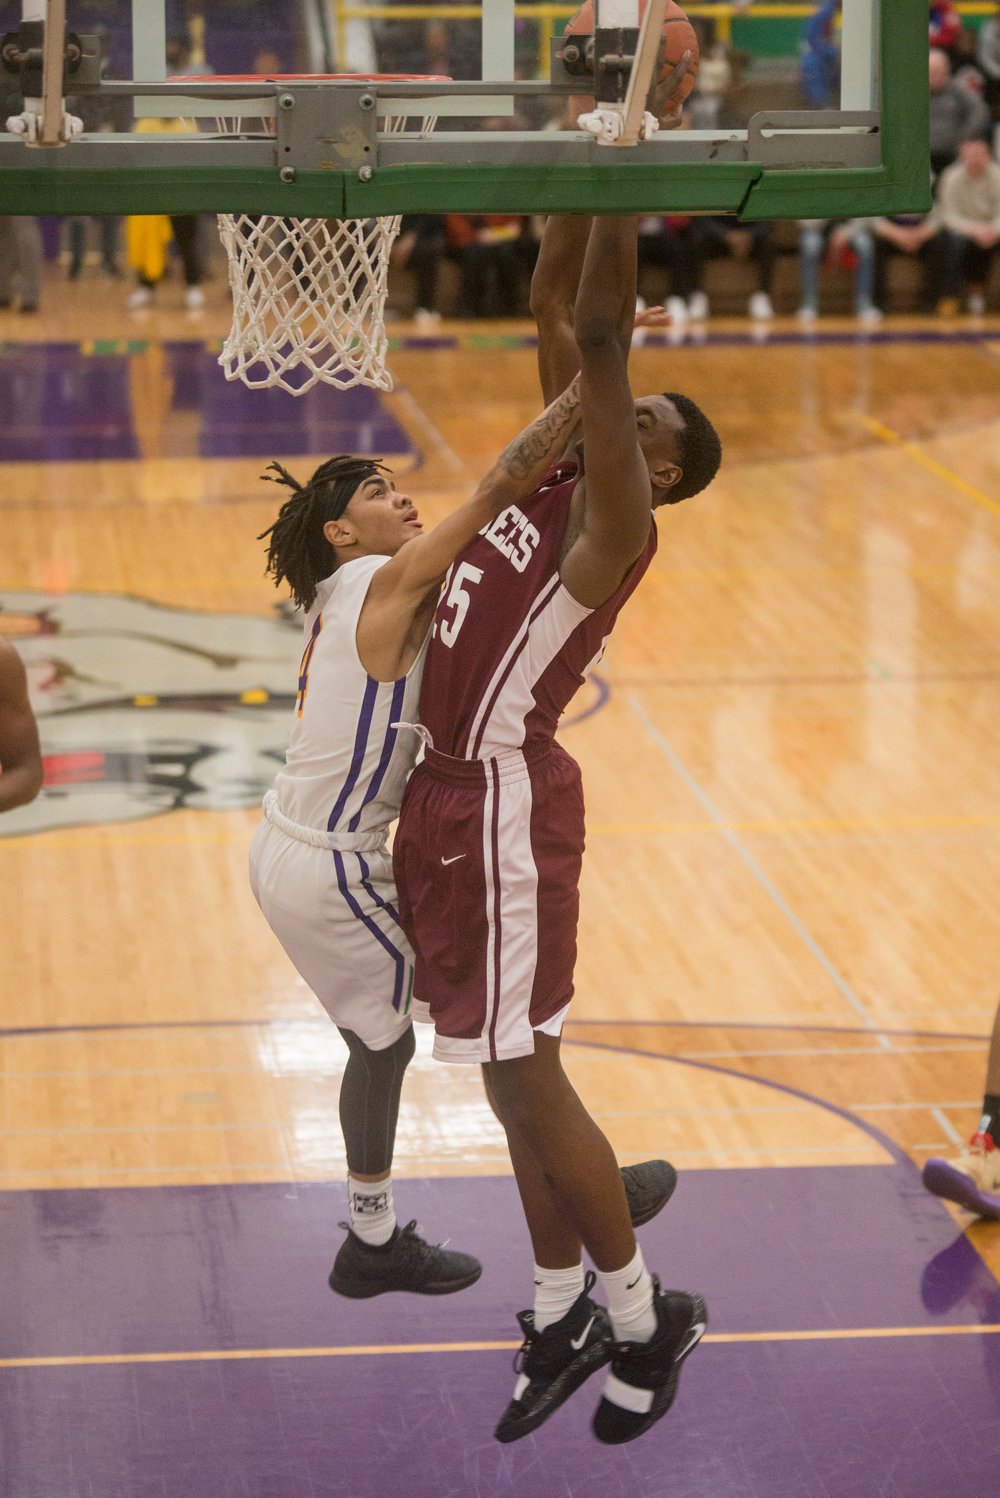 32-Andre-White-Jr-goes-up-for-a-block-vs-Zion-Benton.jpg